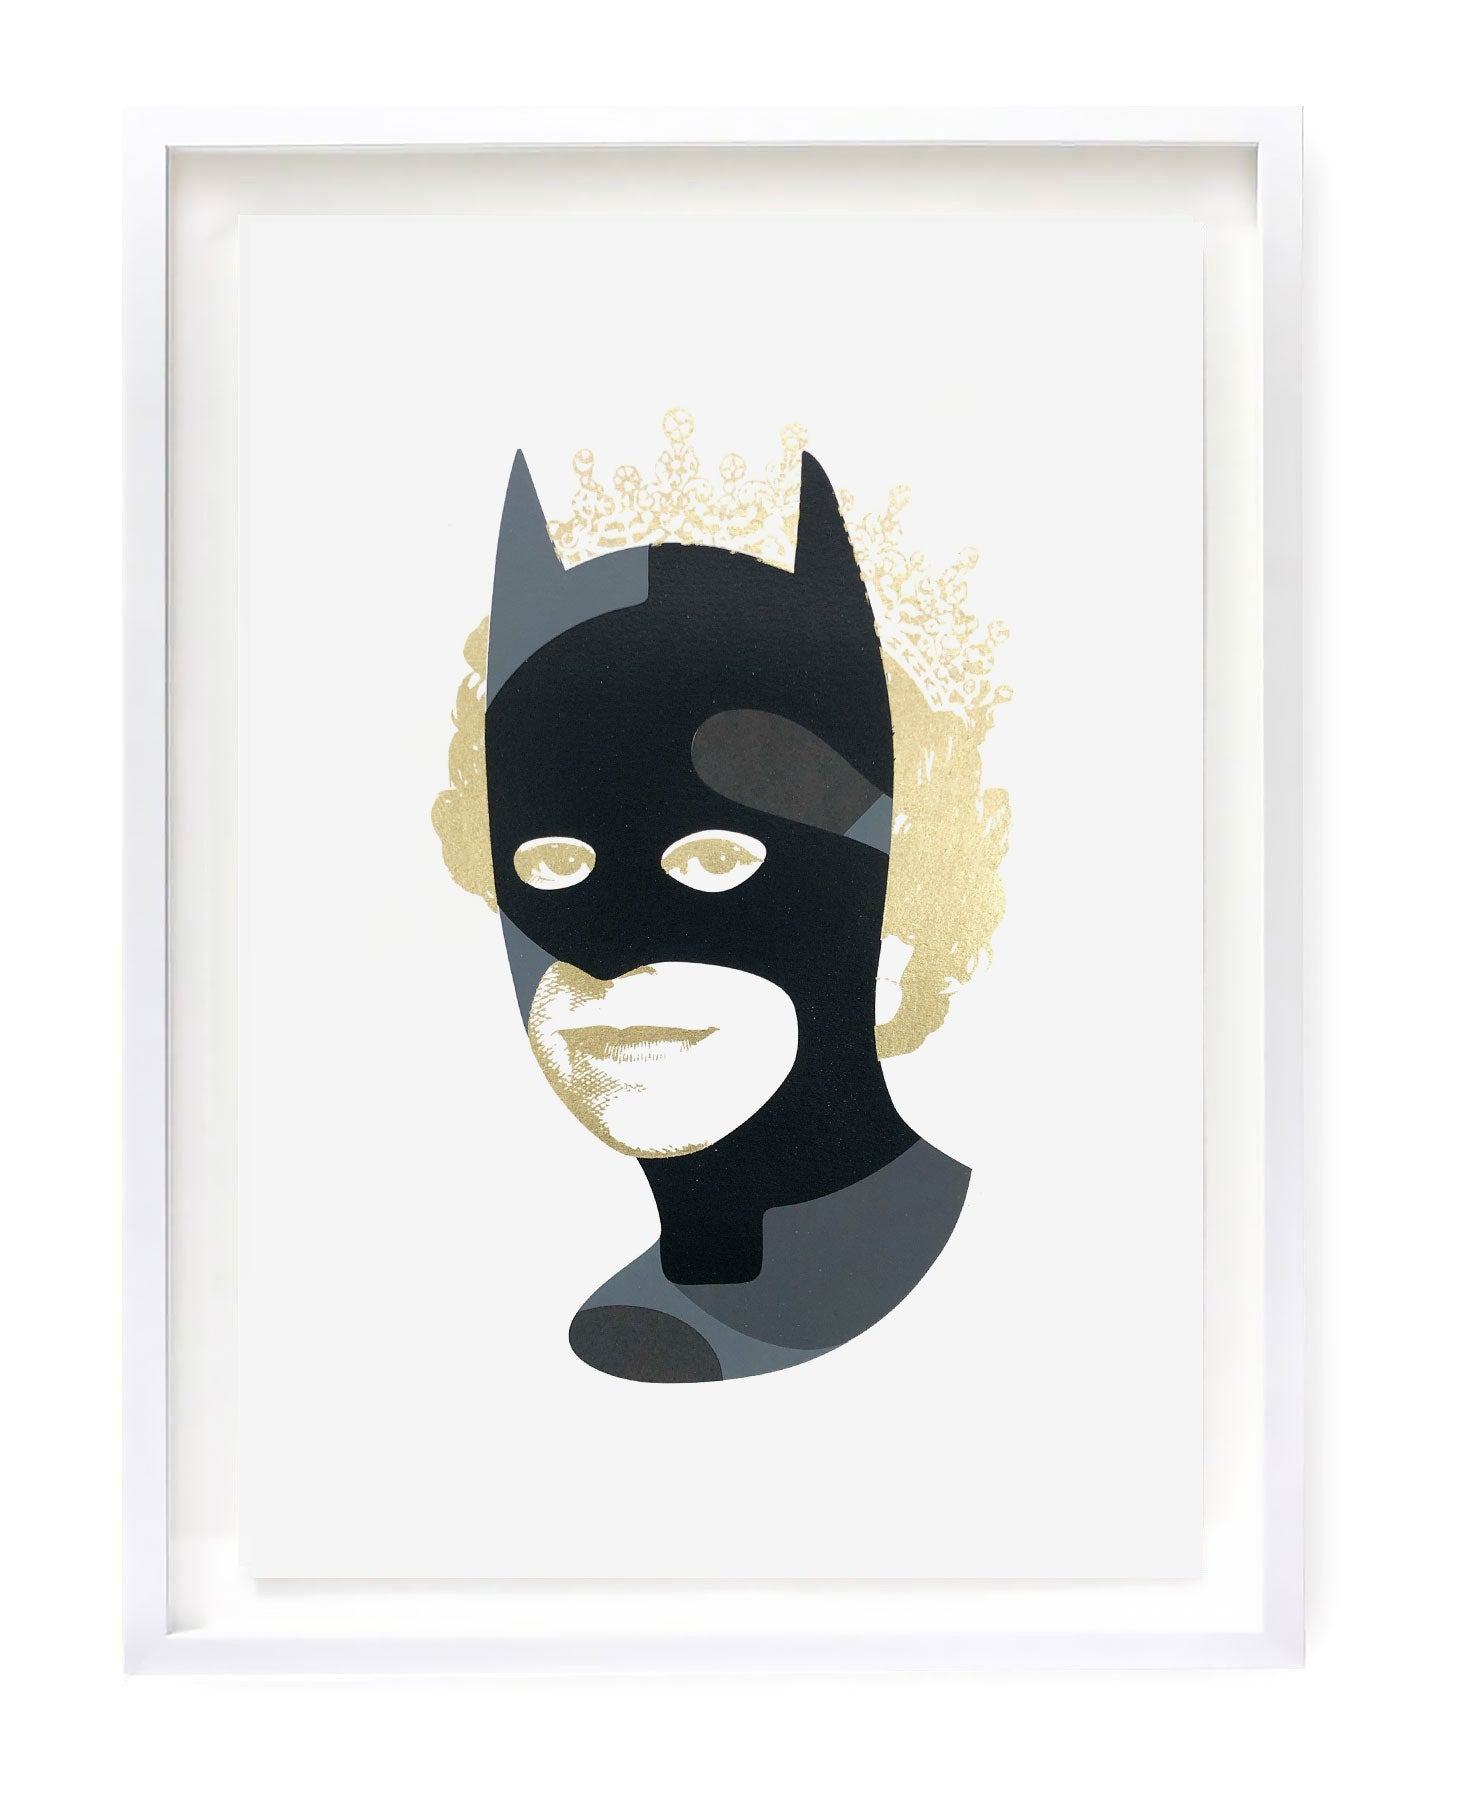 Rich Enough to be Batman - Black and Gold Dollar Sign A3 edition